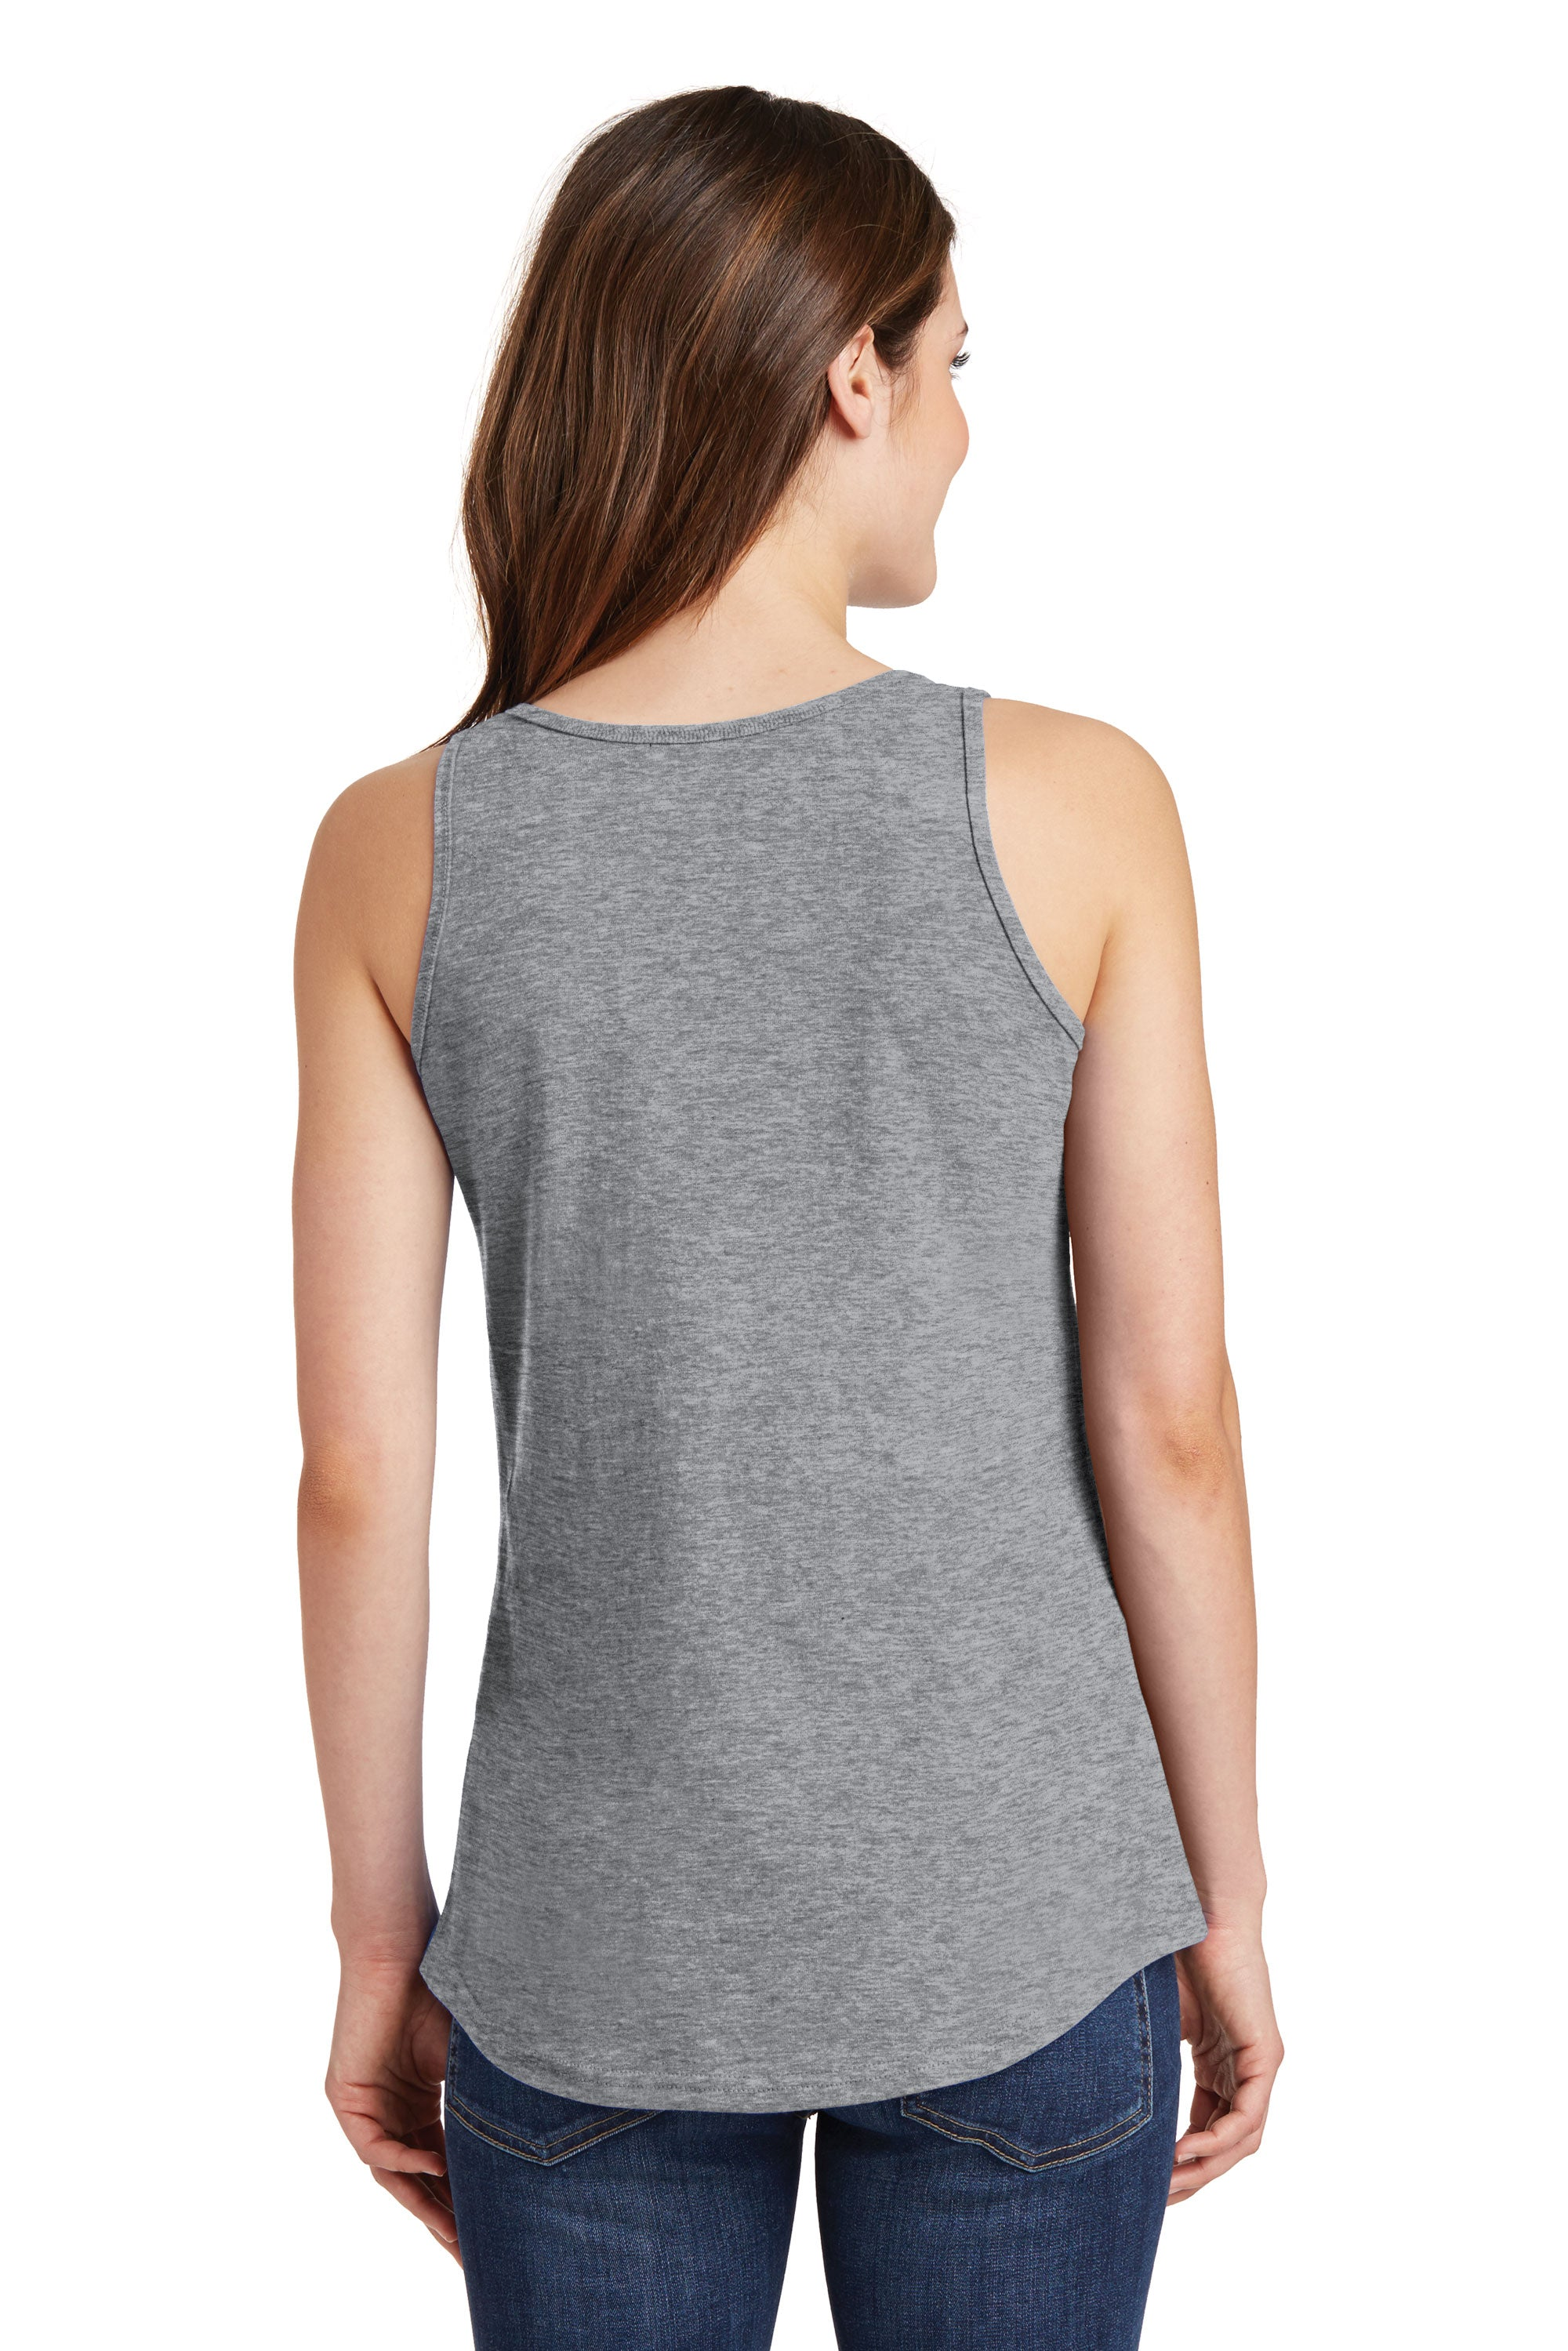 HOT OUT HERE - WOMEN'S TANK